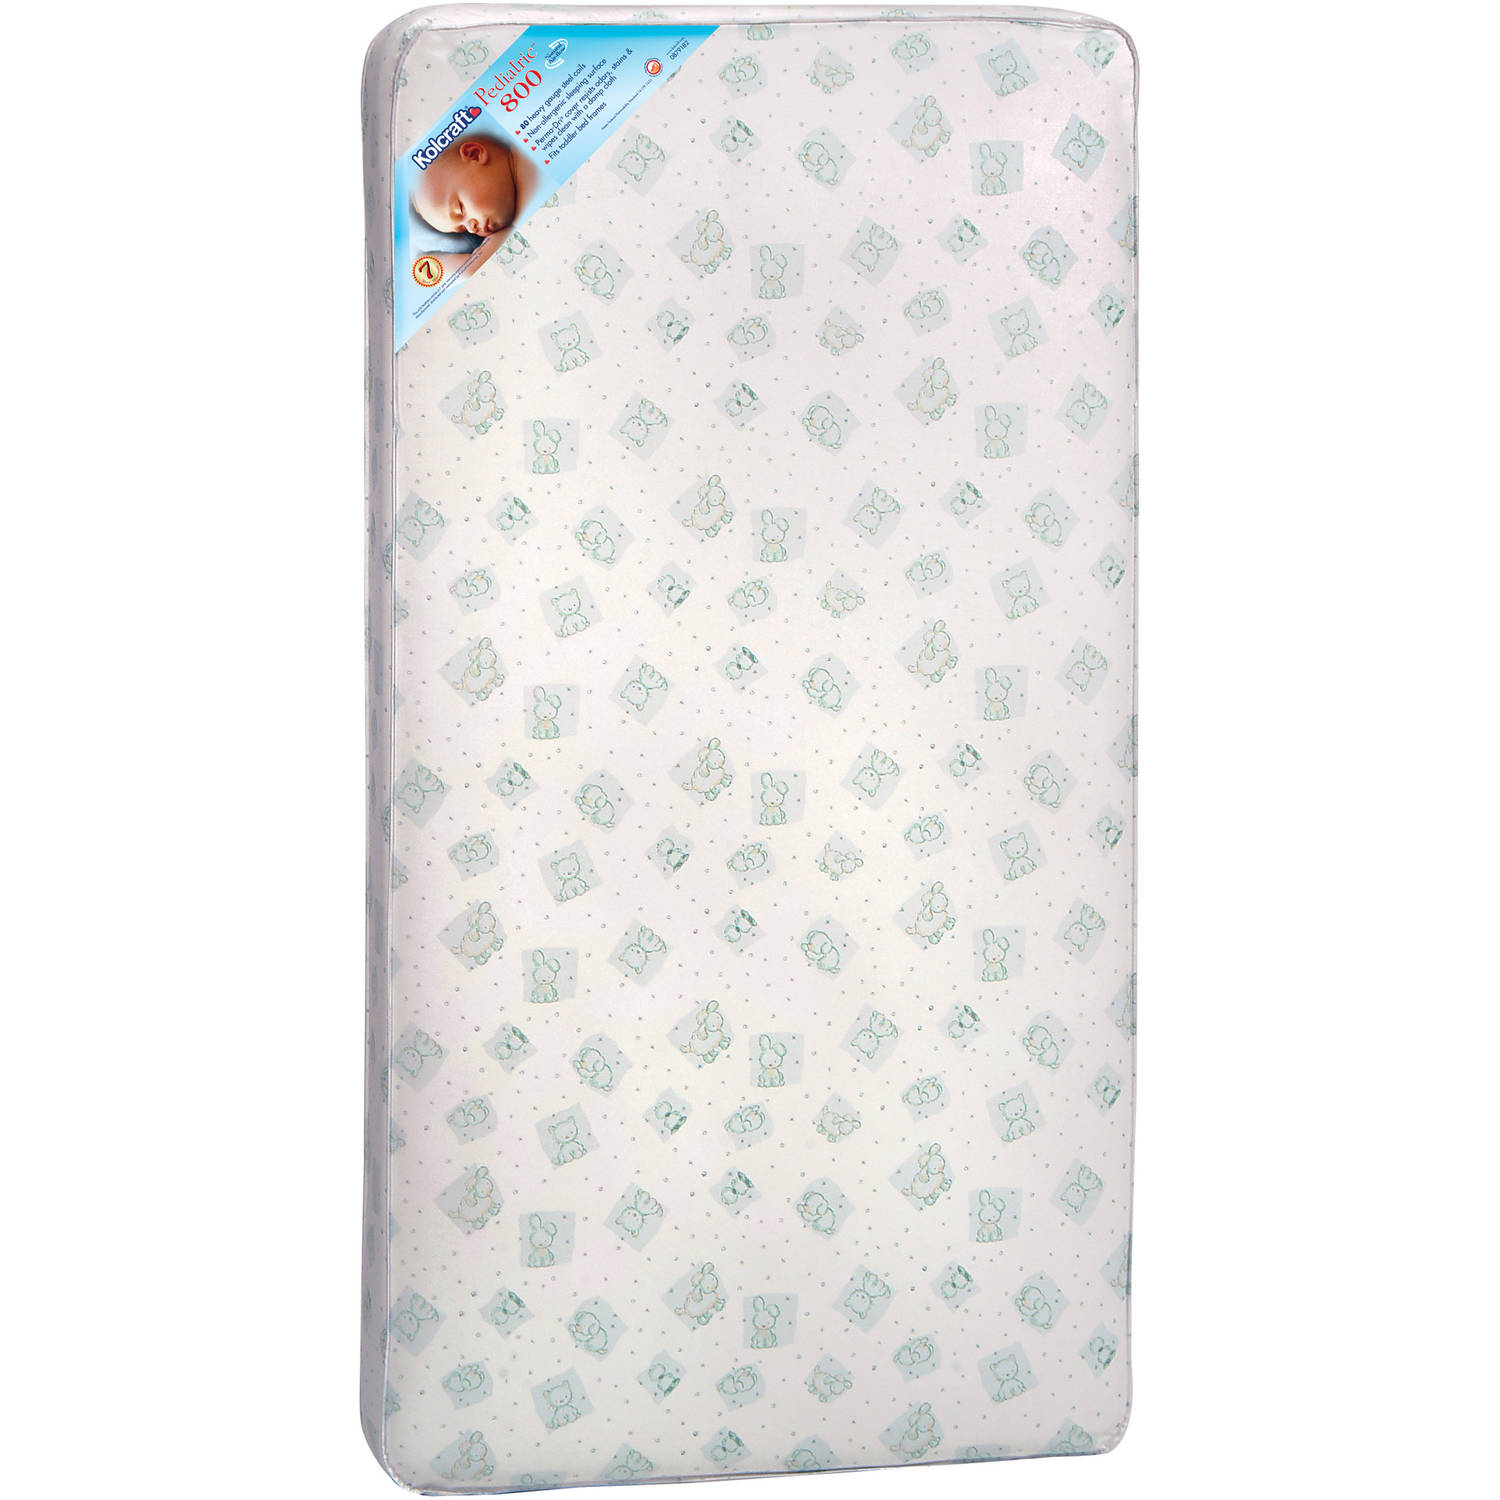 Kolcraft Pediatric 800 Crib and Toddler Mattress